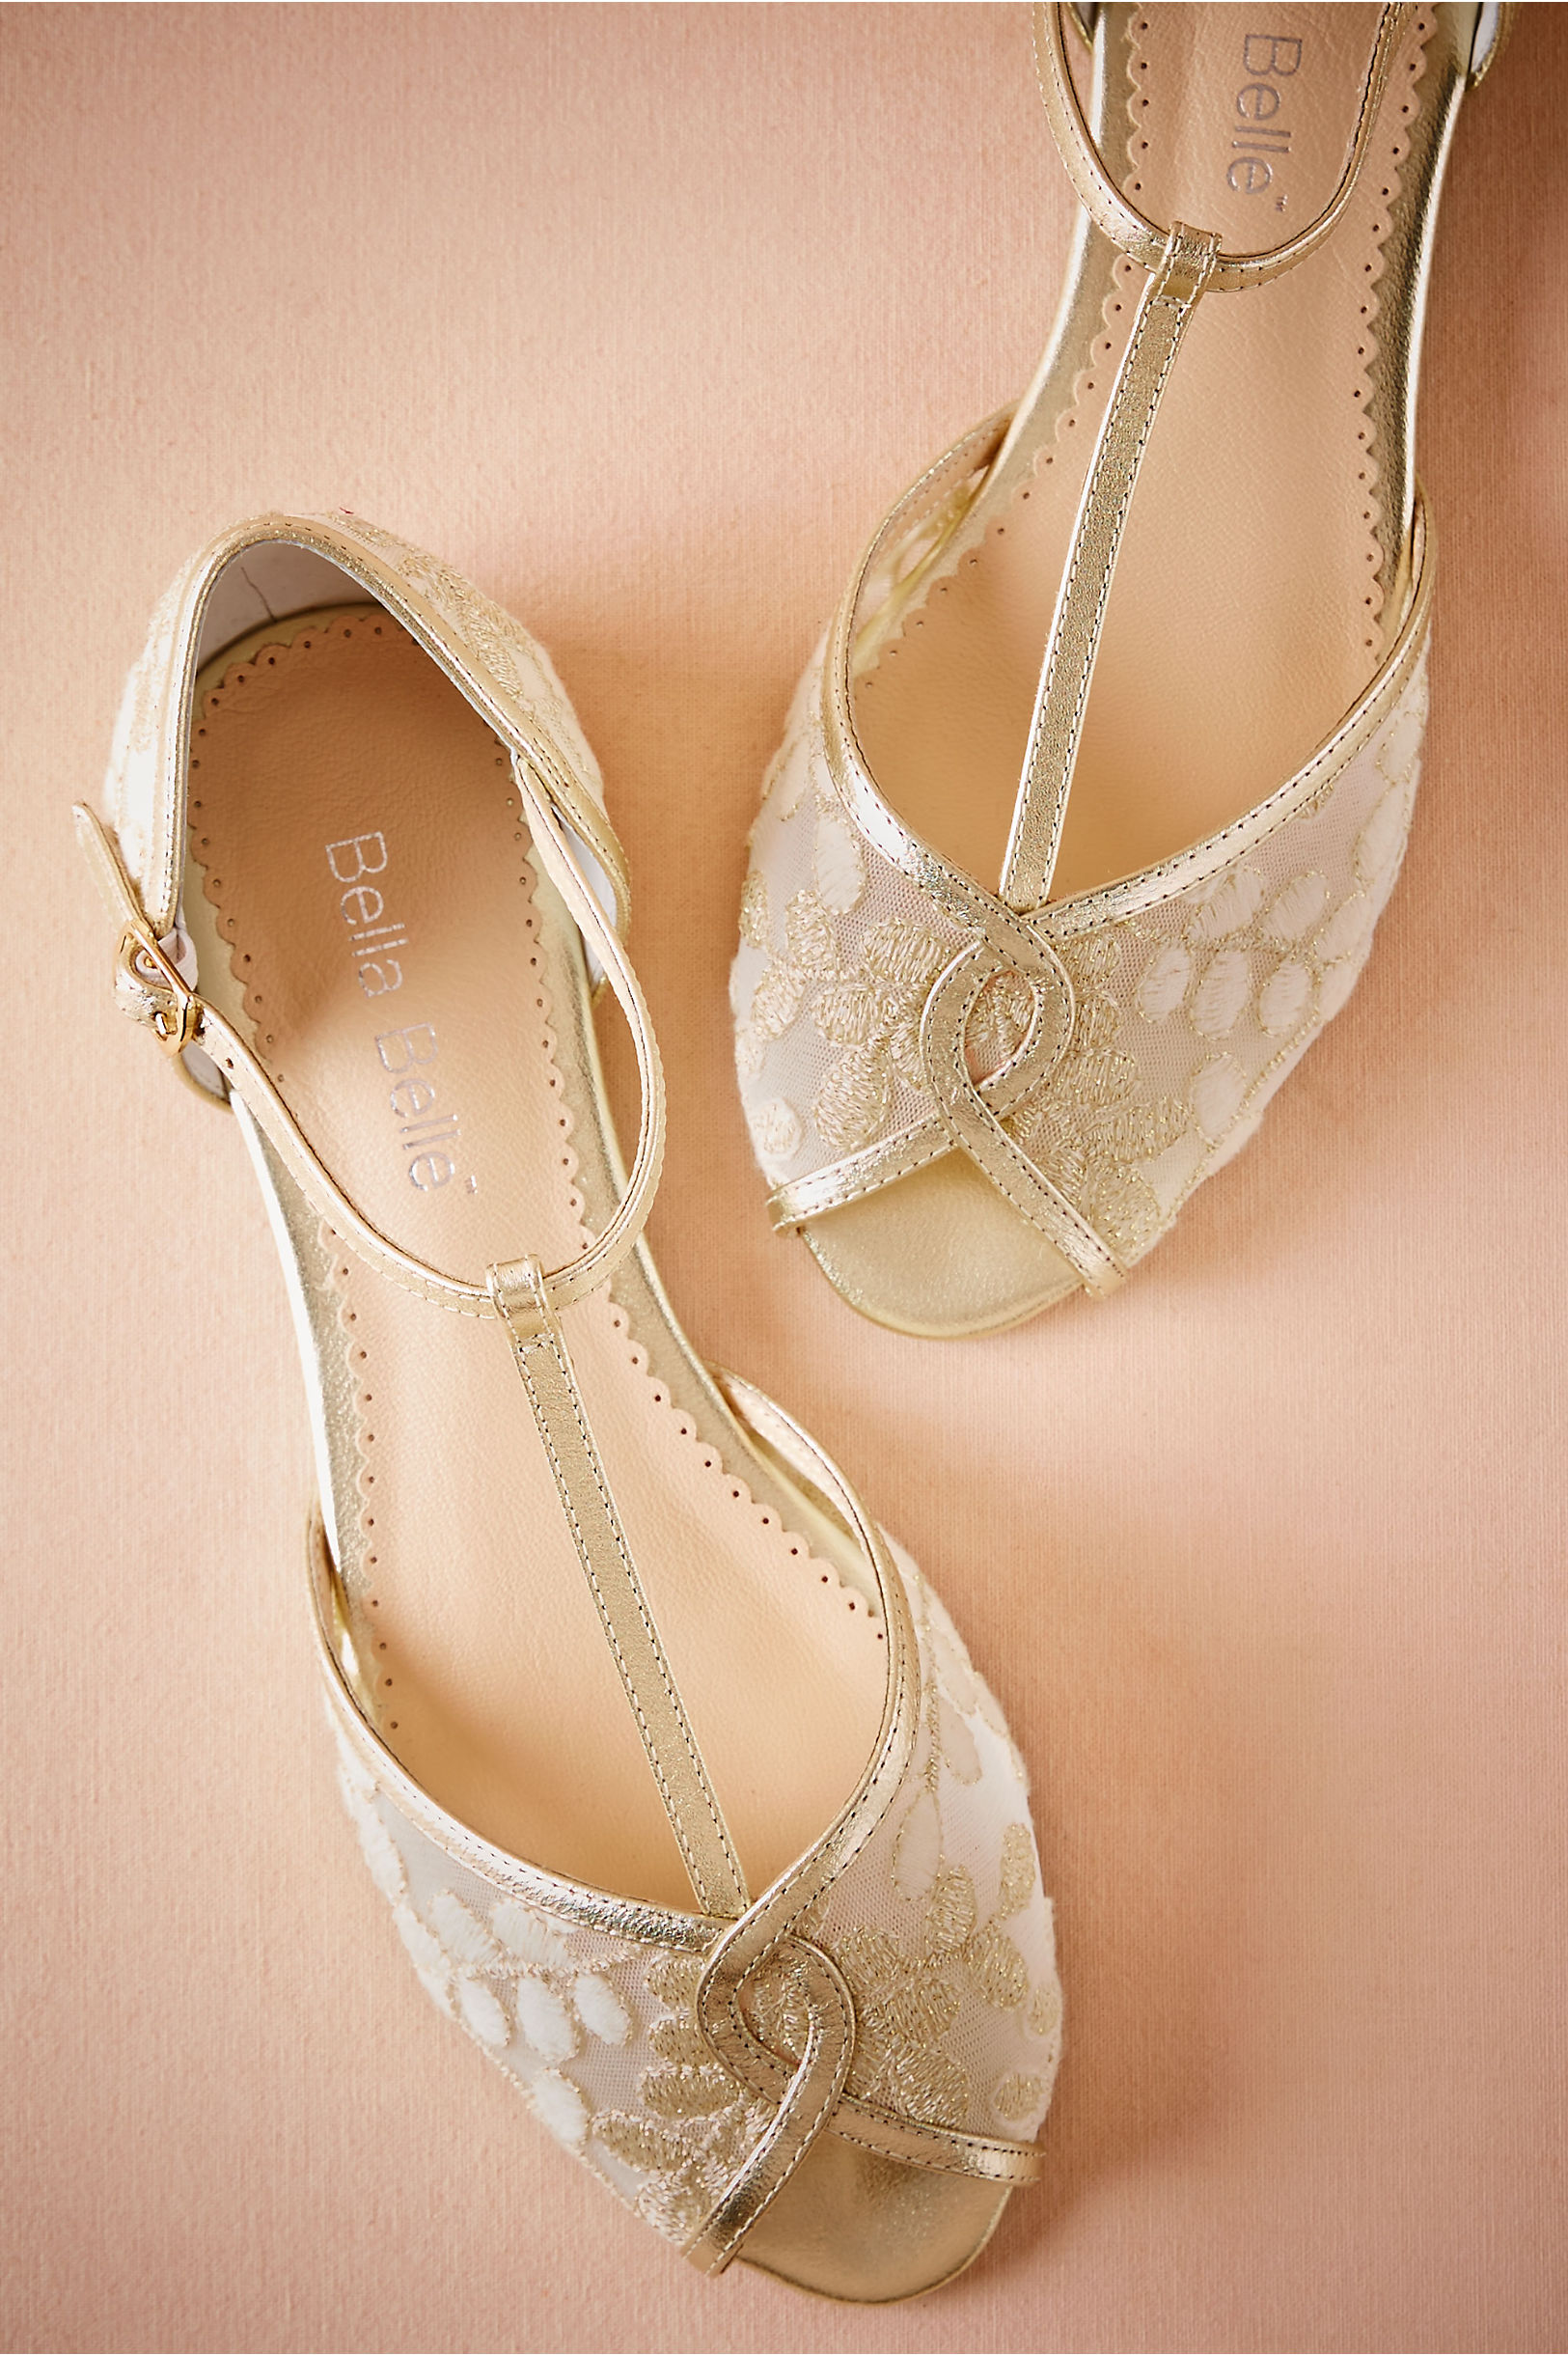 3a1aa0196870ec Bella Belle Maisie Embroidered T-Strap Flats Gold in Bride